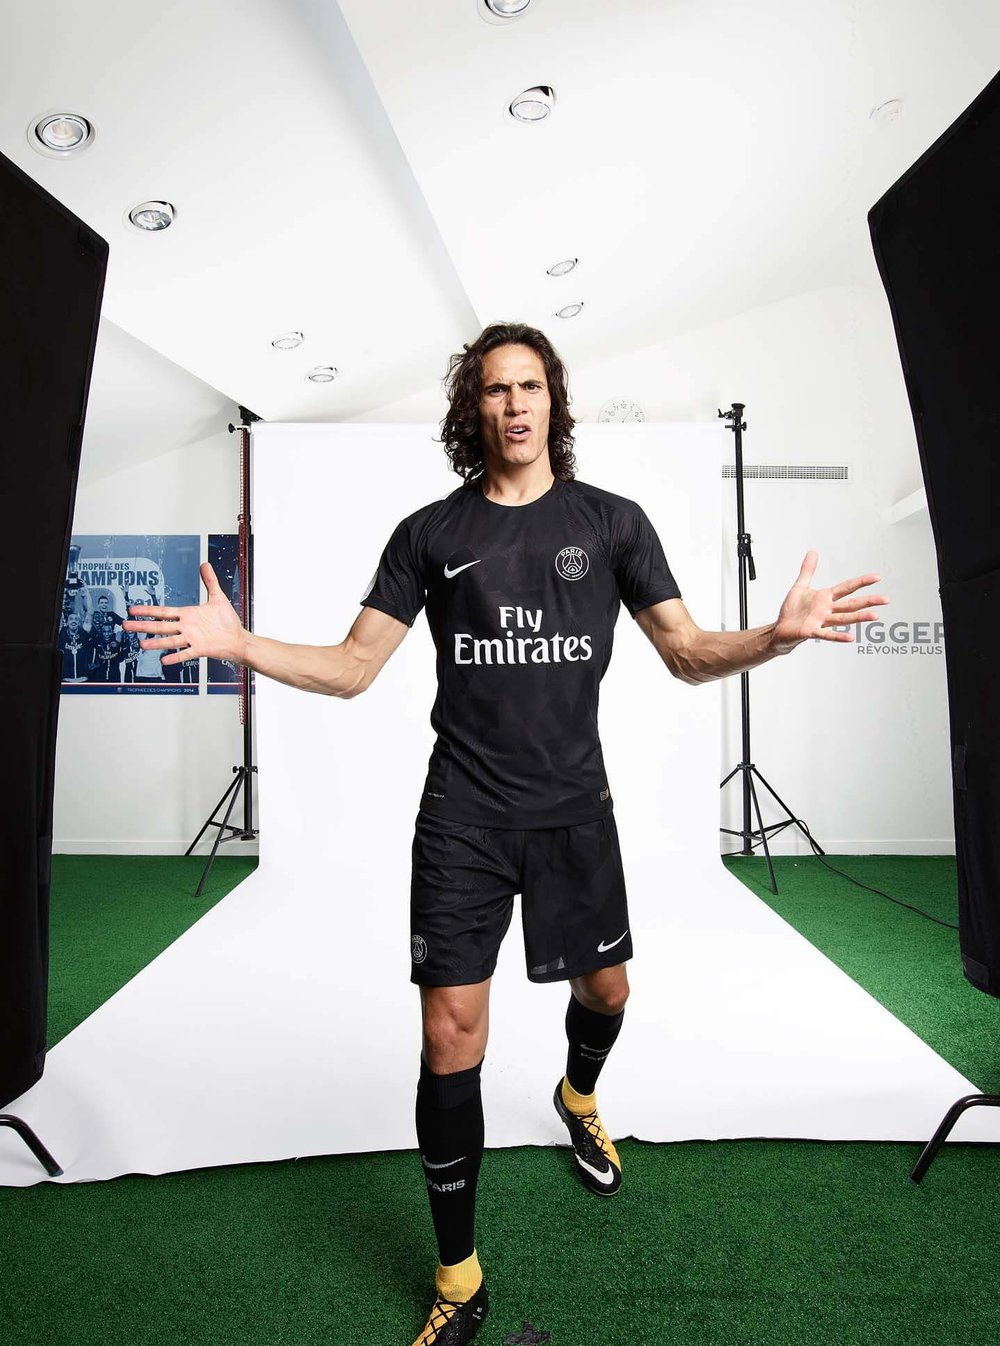 Turf Empire PSG Third Kit Soccer Kits Soccer Products 6.jpg